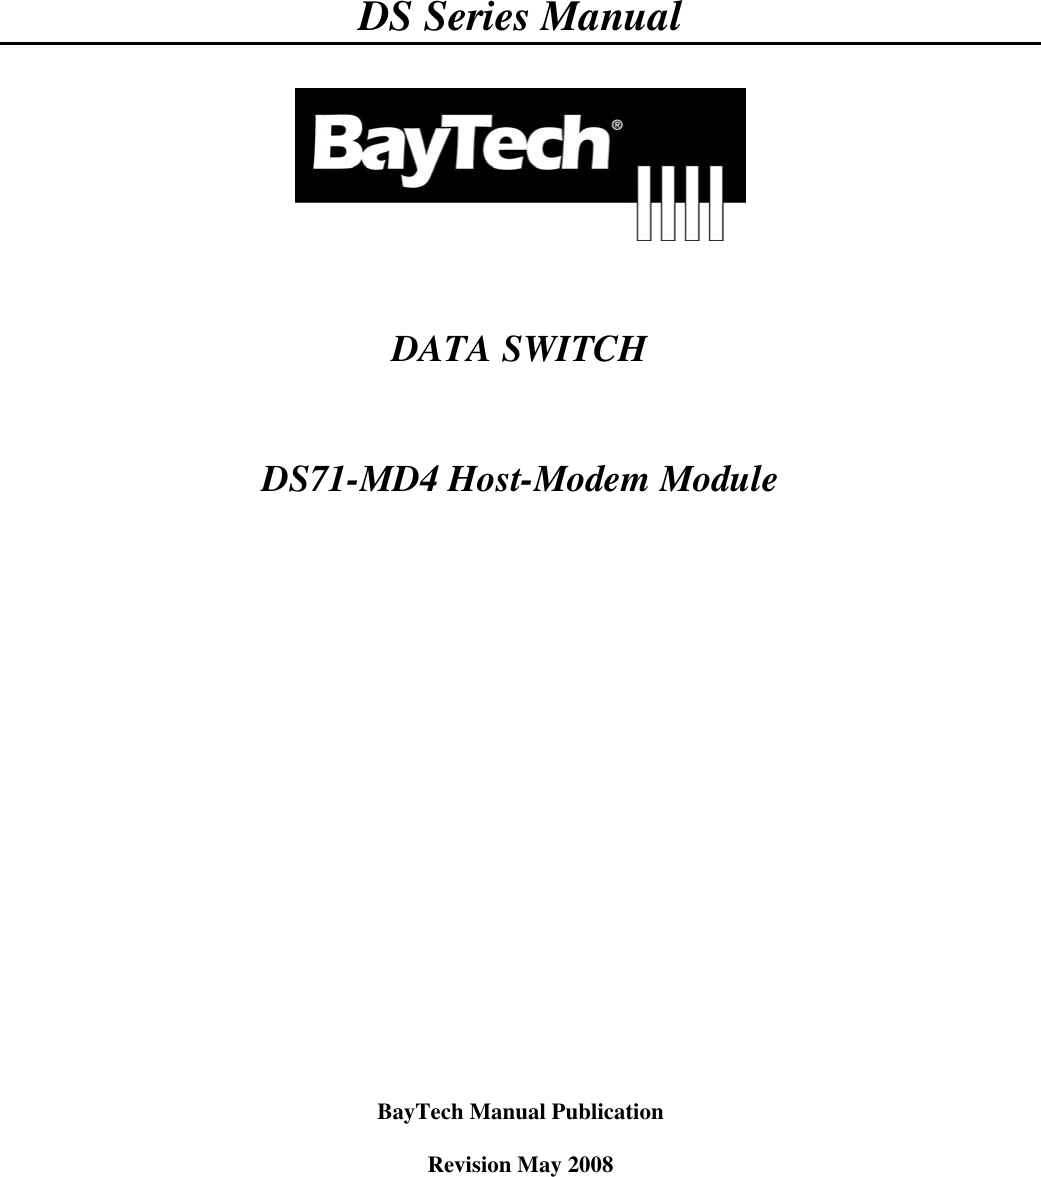 Cisco Systems Baytech Ds Series Users Manual DS71 MD4